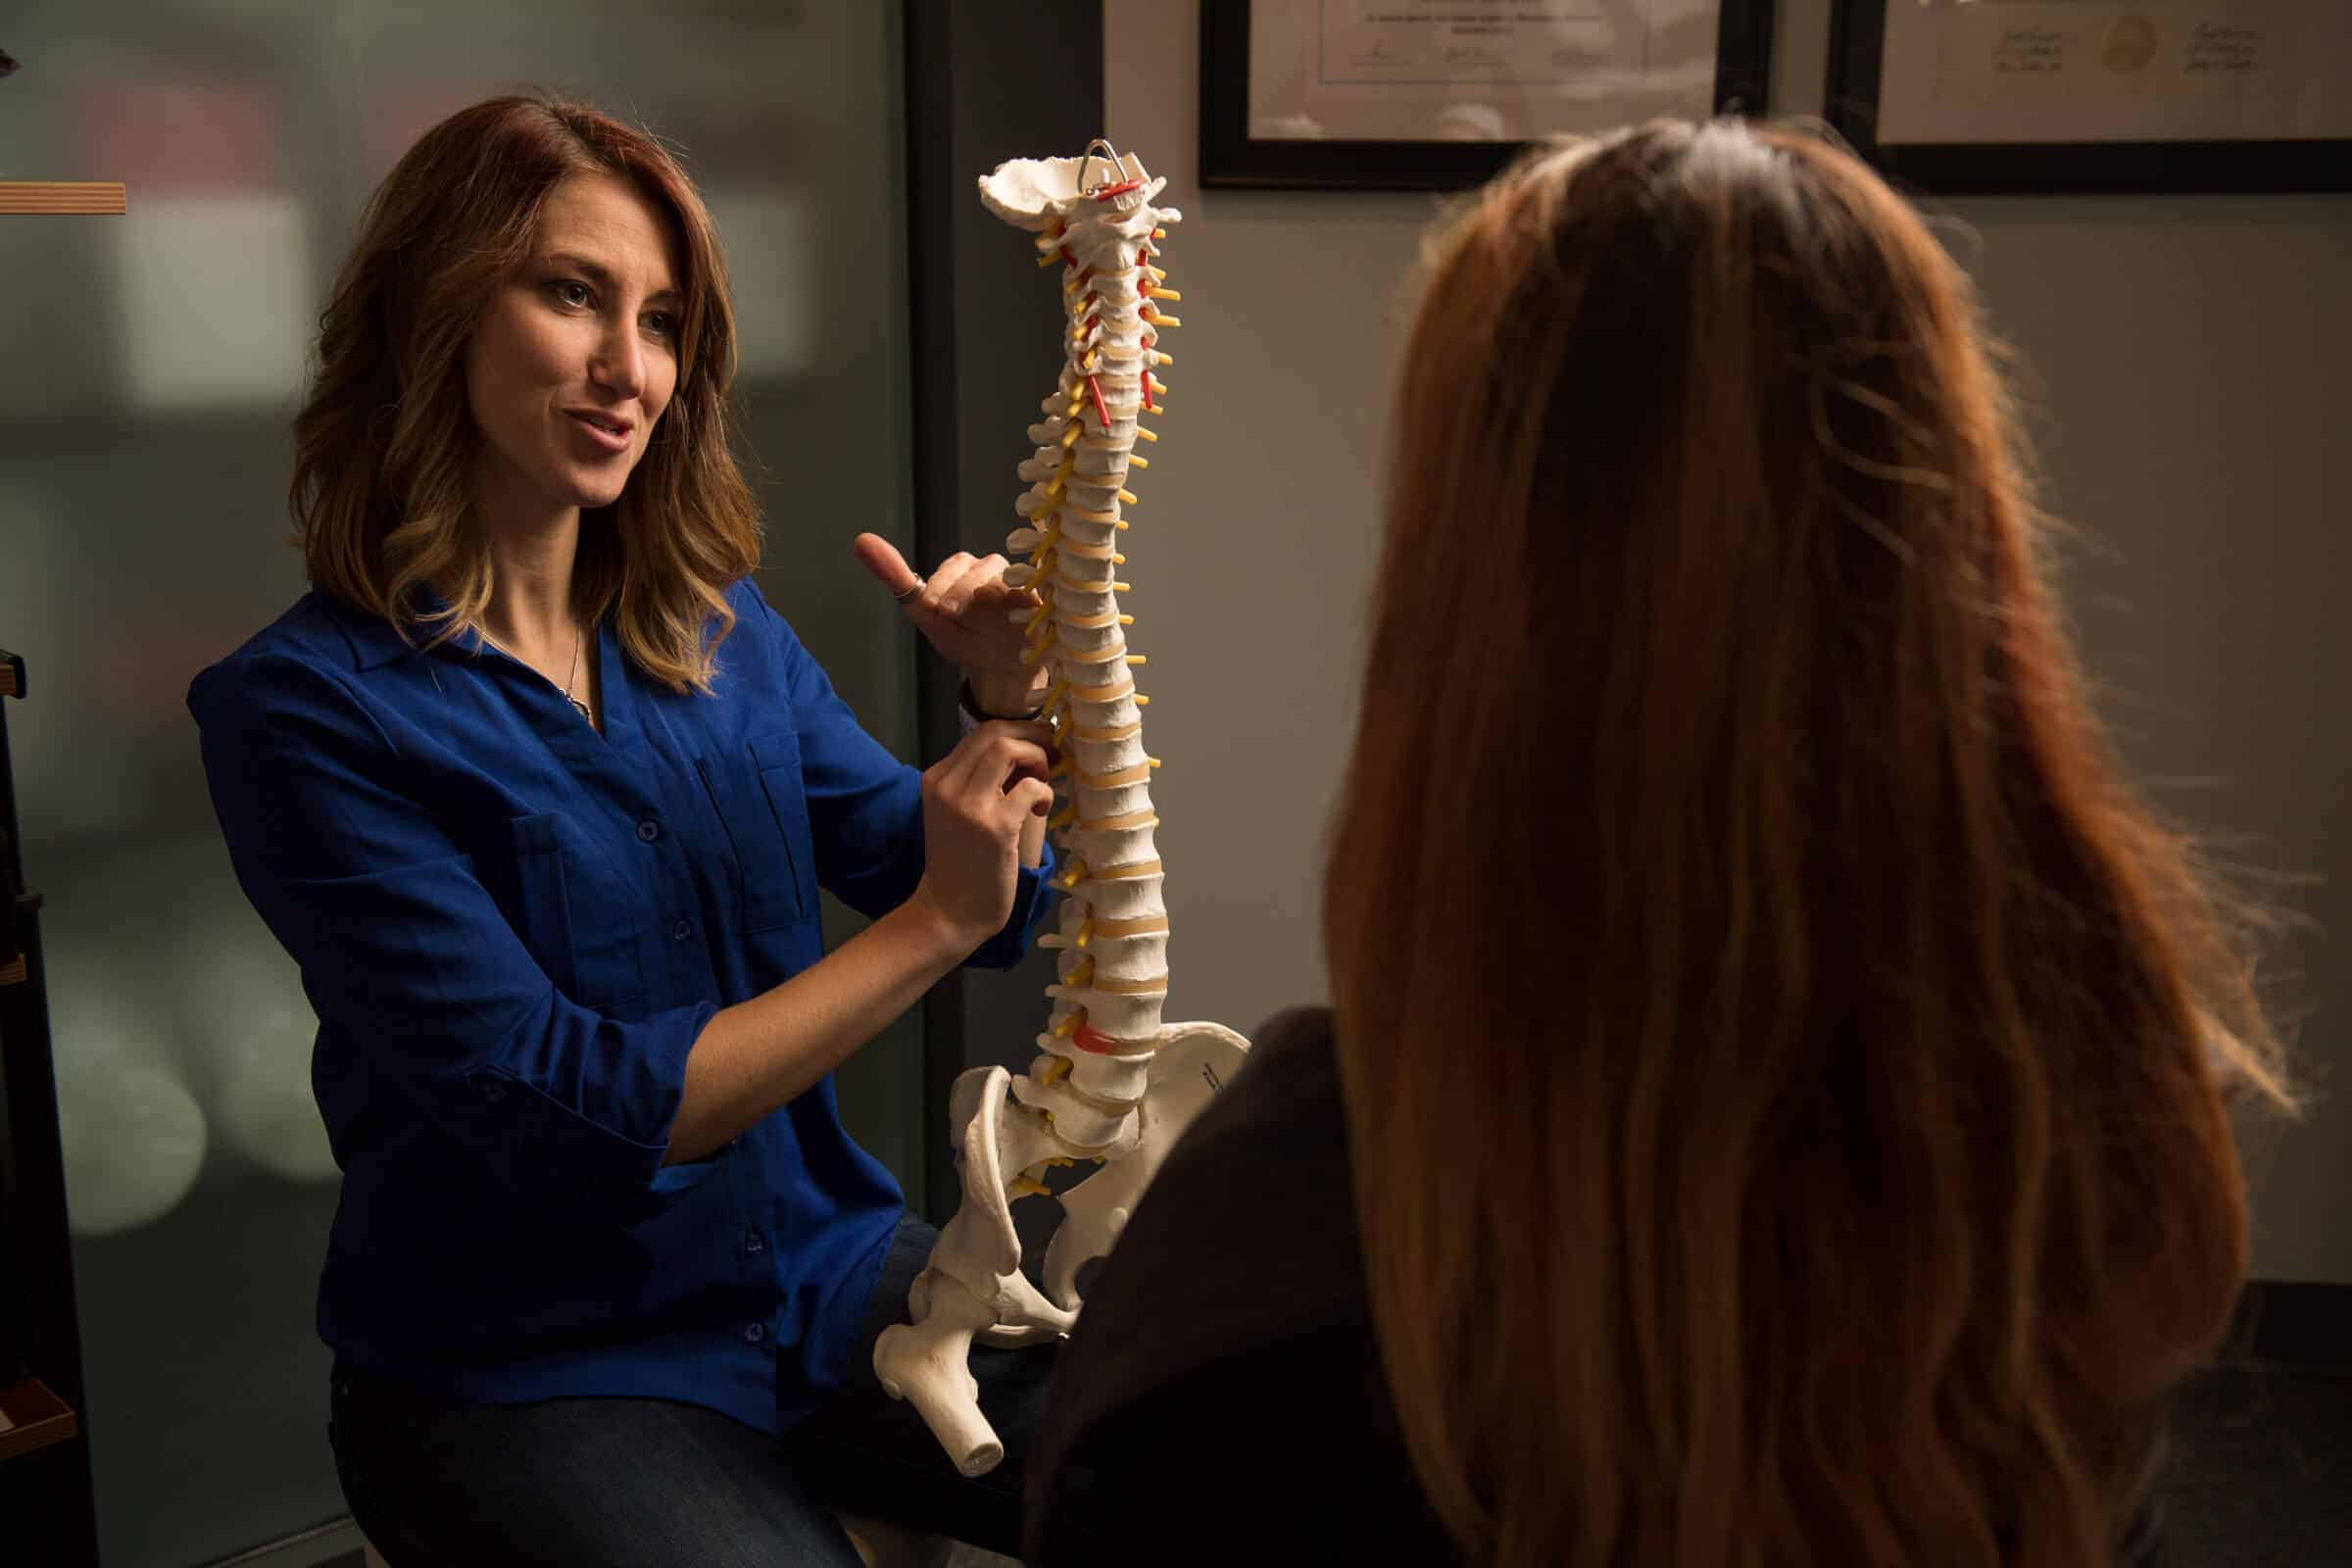 Dr. Jasmine Craner explaining how the spine works